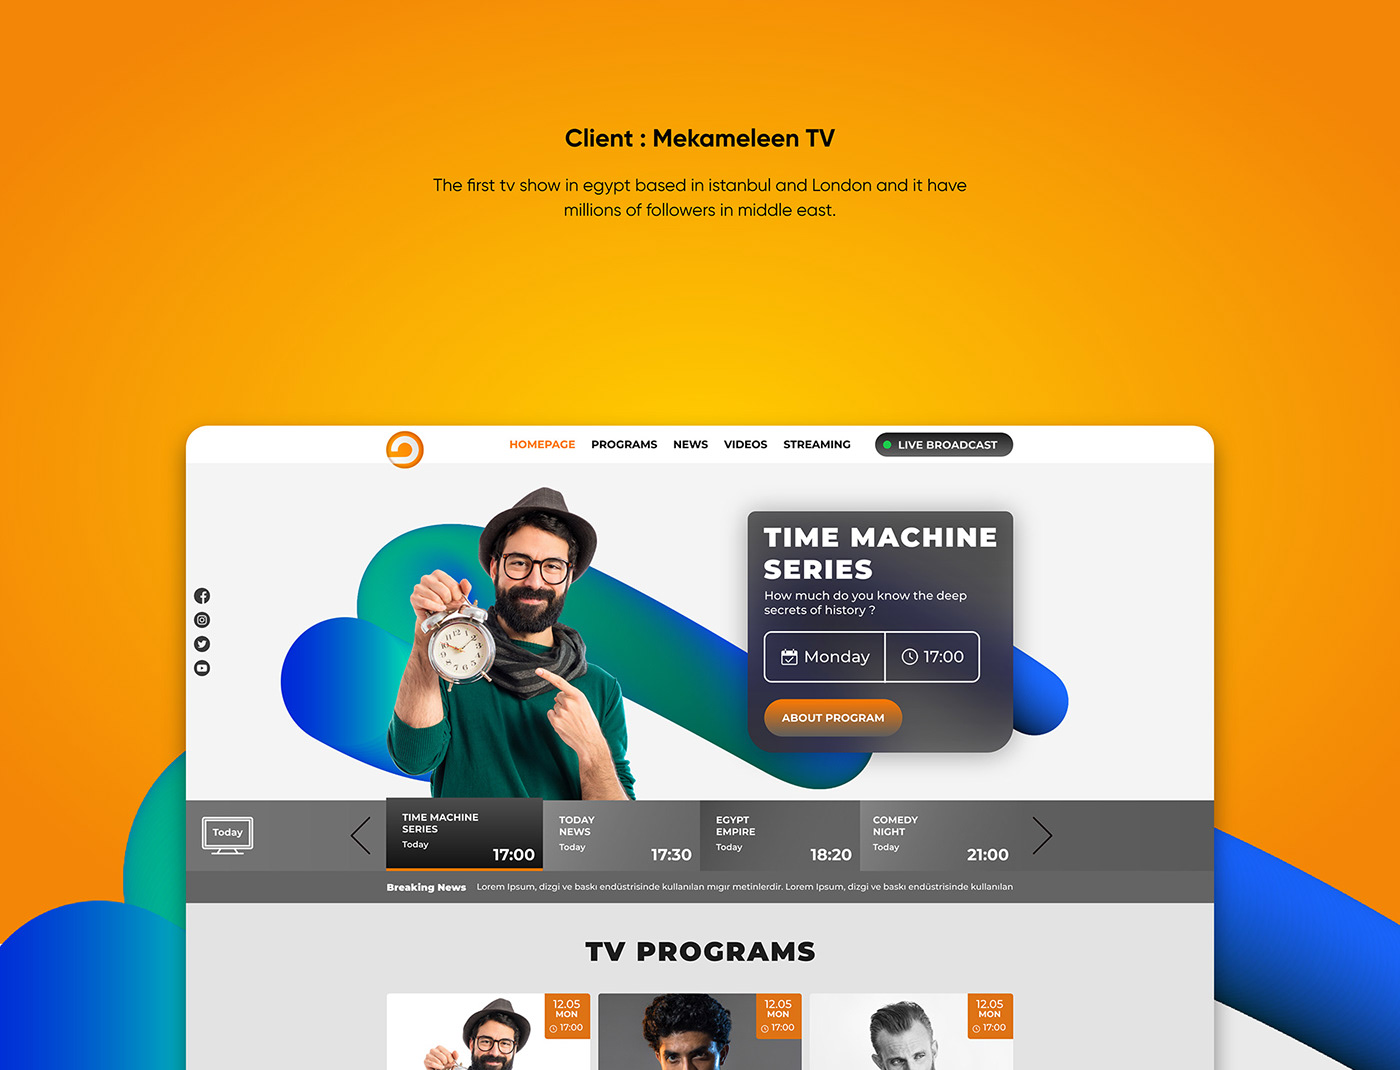 design,Experience,Interface,TV channel,UI,user experience,user interface,ux,Web,Web Design